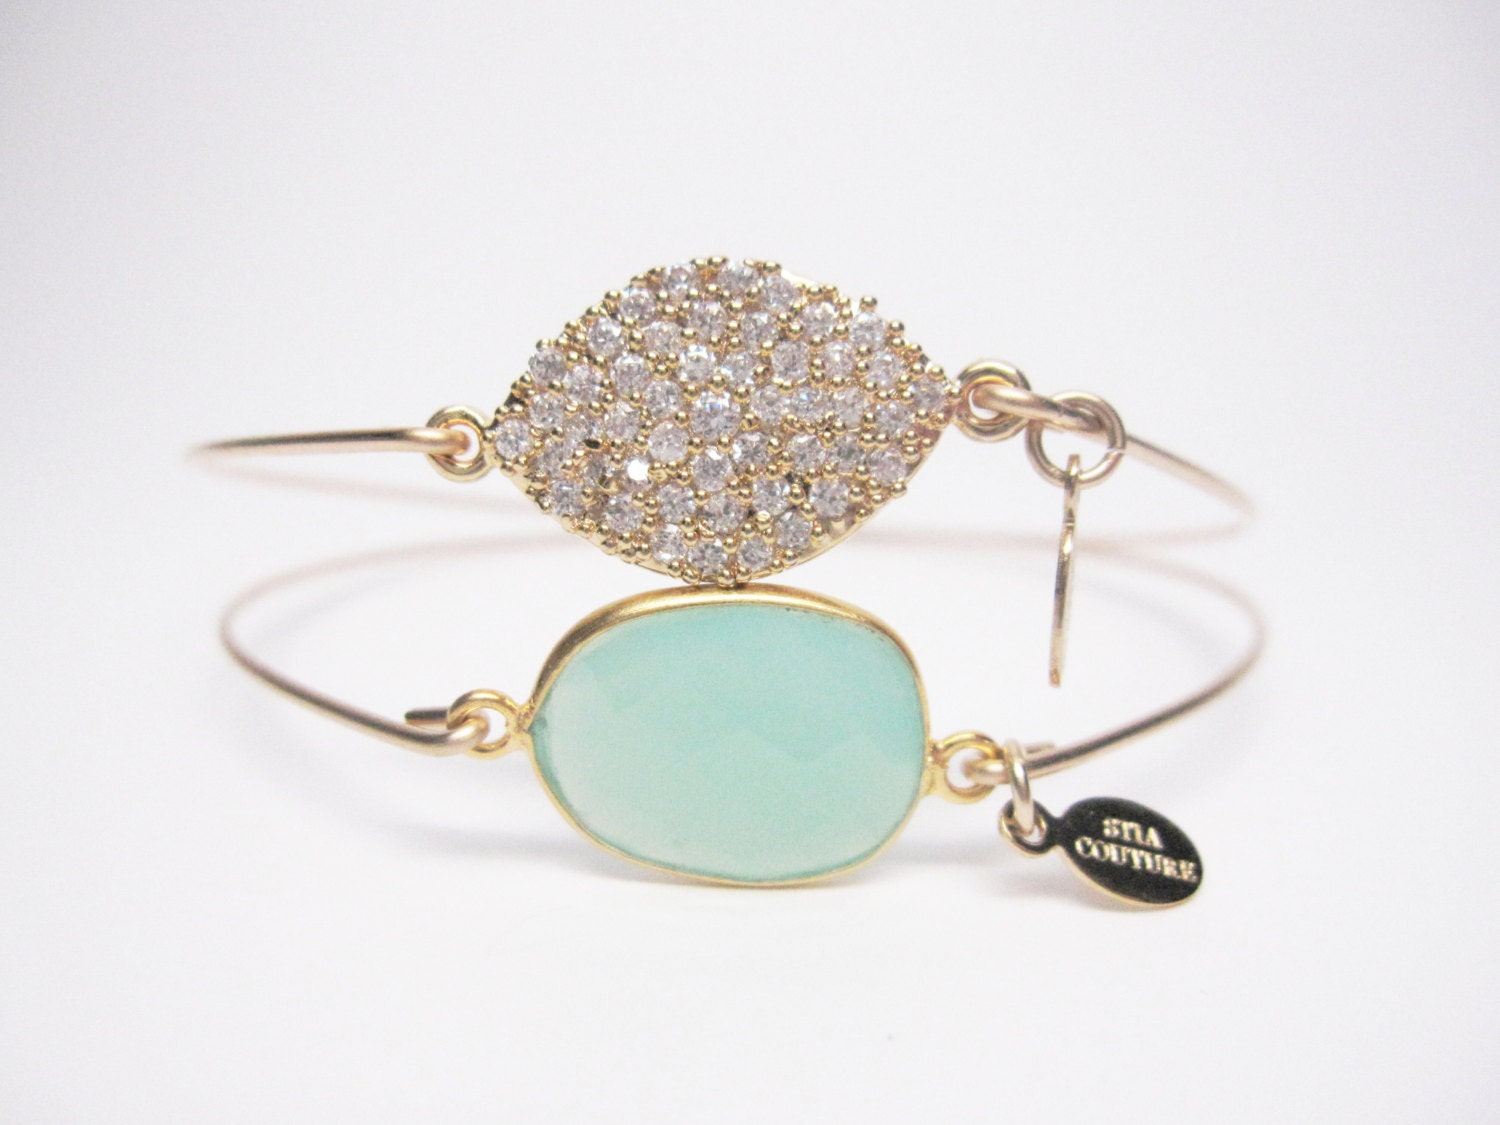 14K Gold Filled Chrysoprase Bangle Bracelet - Magical Sophistication set - Tiffany Blue - STIACOUTURE